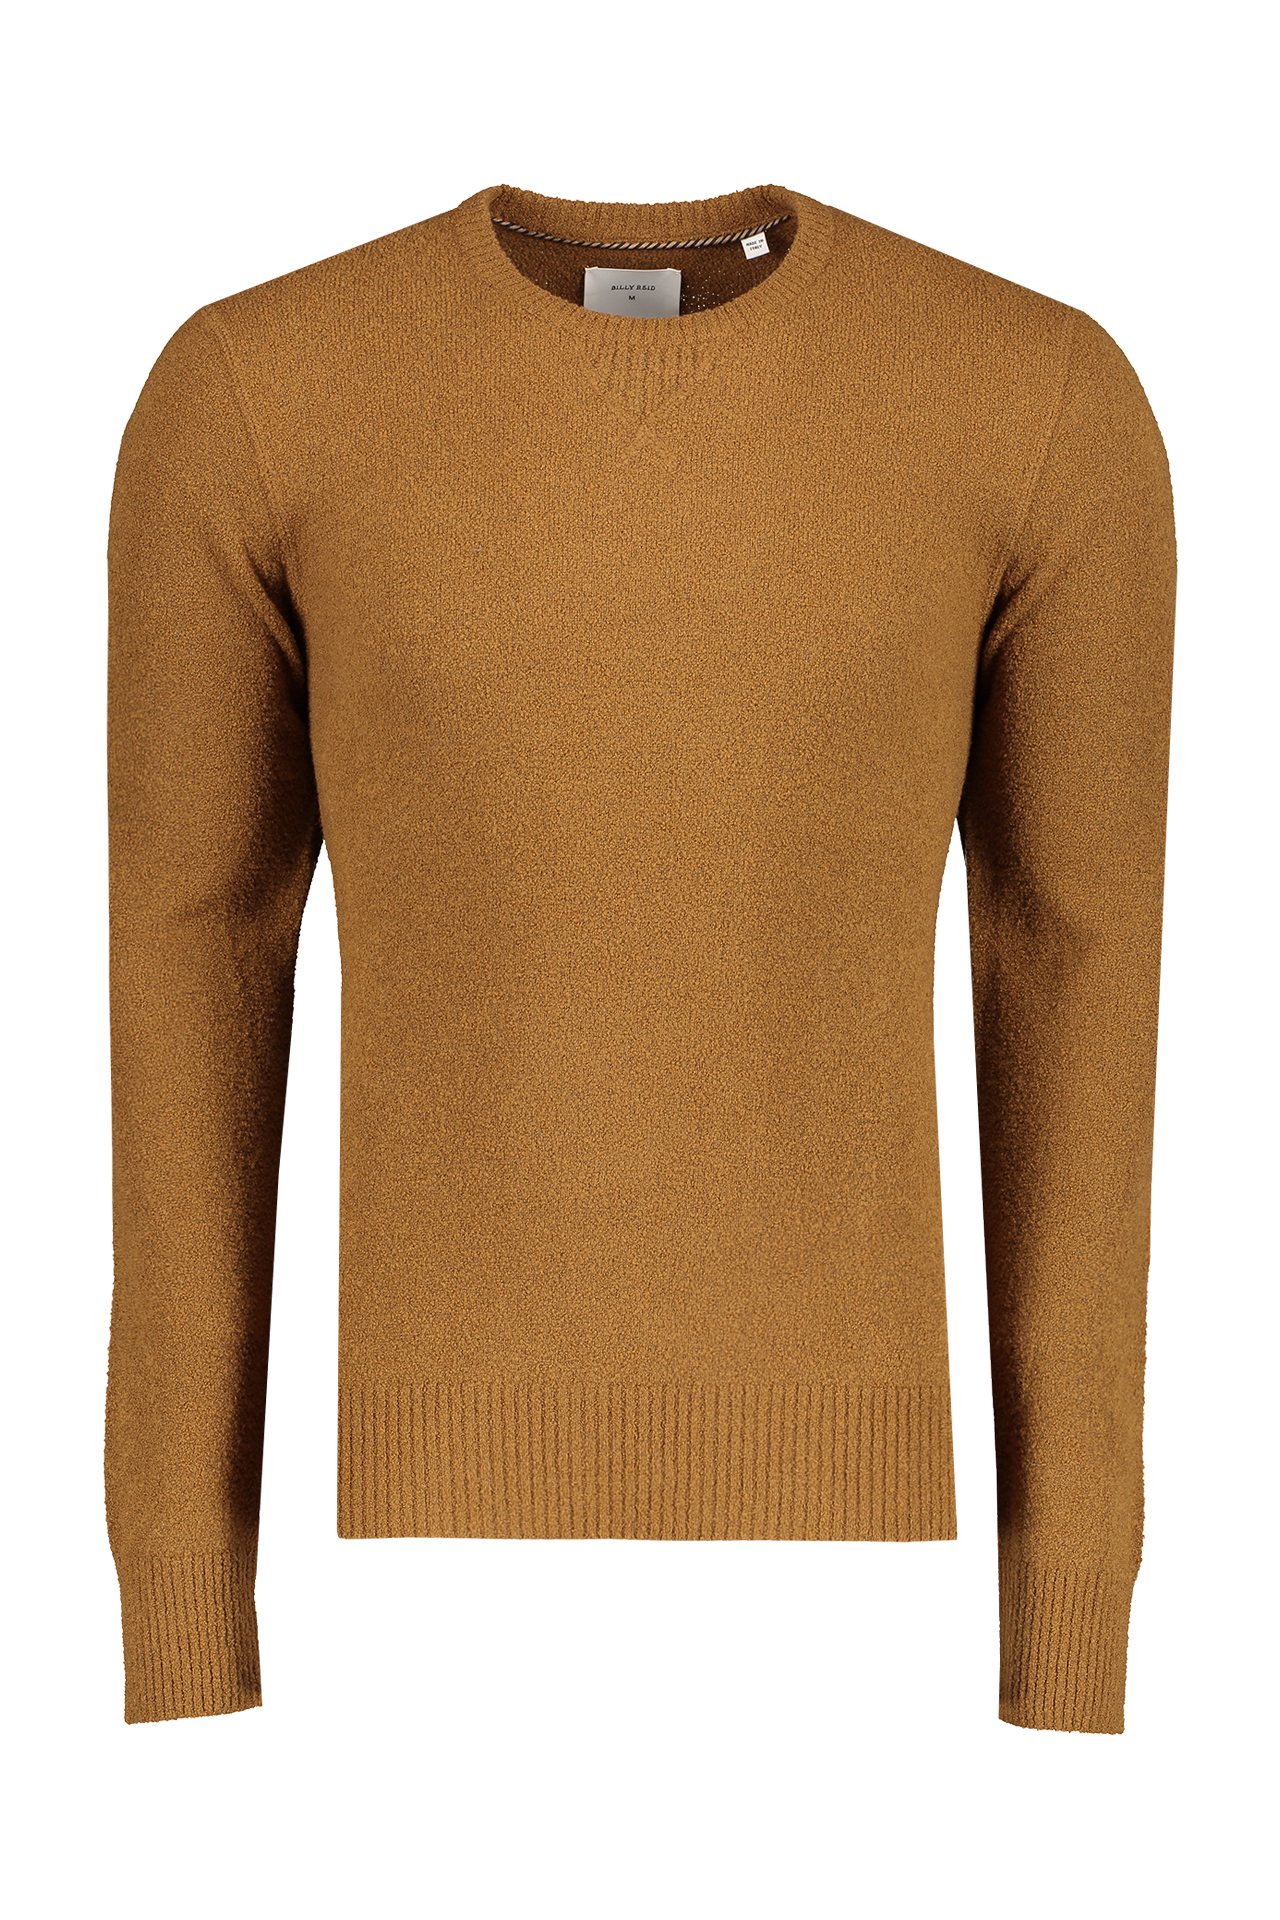 Front image view of Billy Reid Men's Boucle Crewneck Sweater Caramel